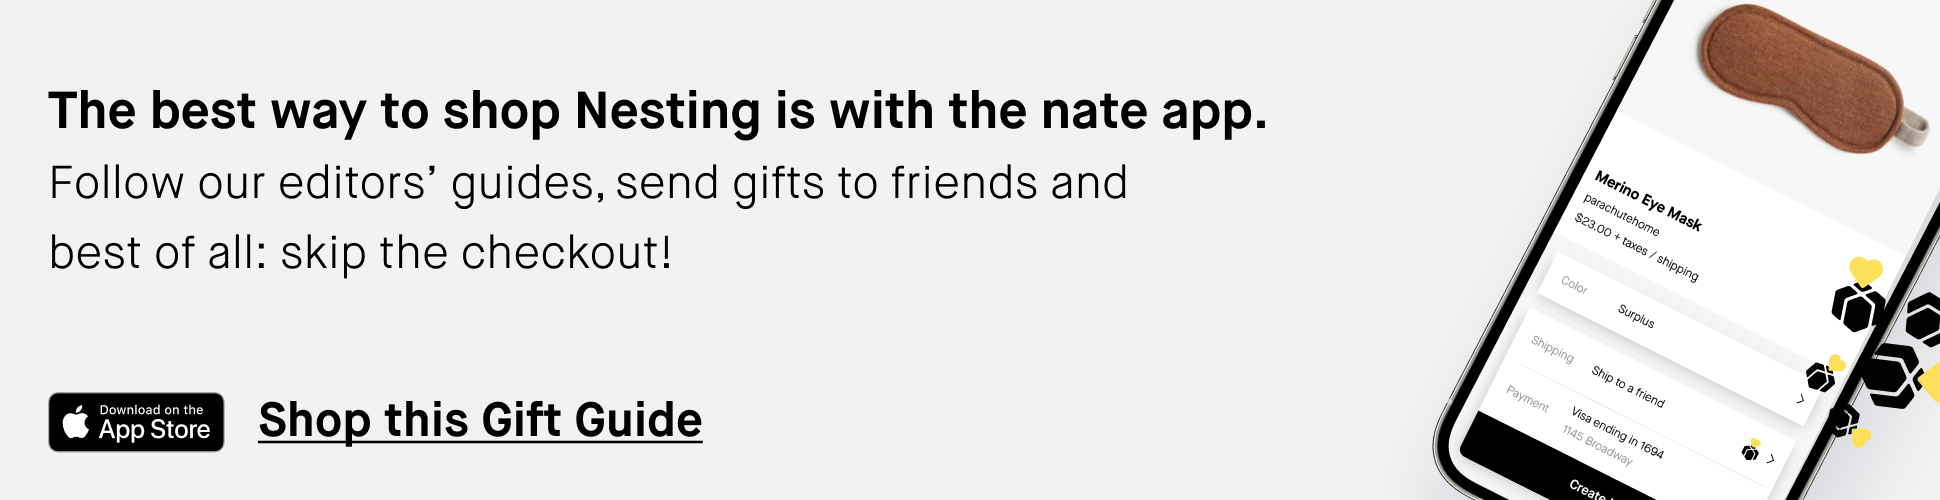 shop our gift guides using the nate app